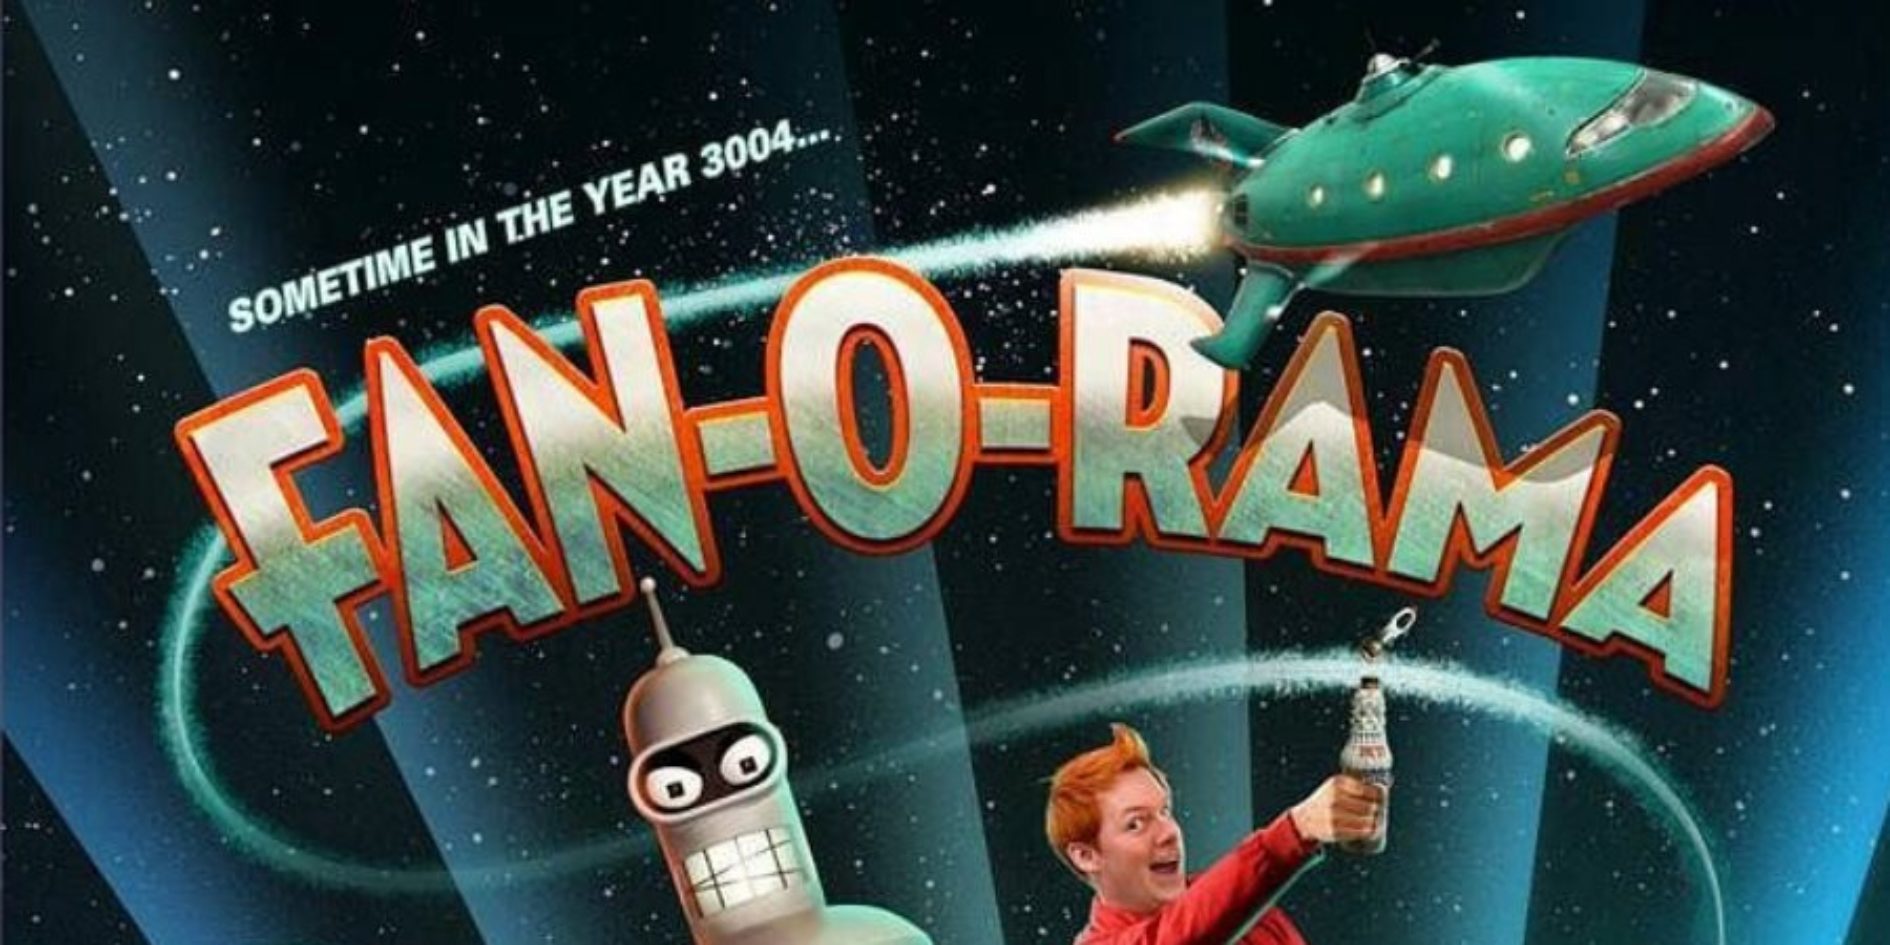 Fan-O-Rama fan film poster